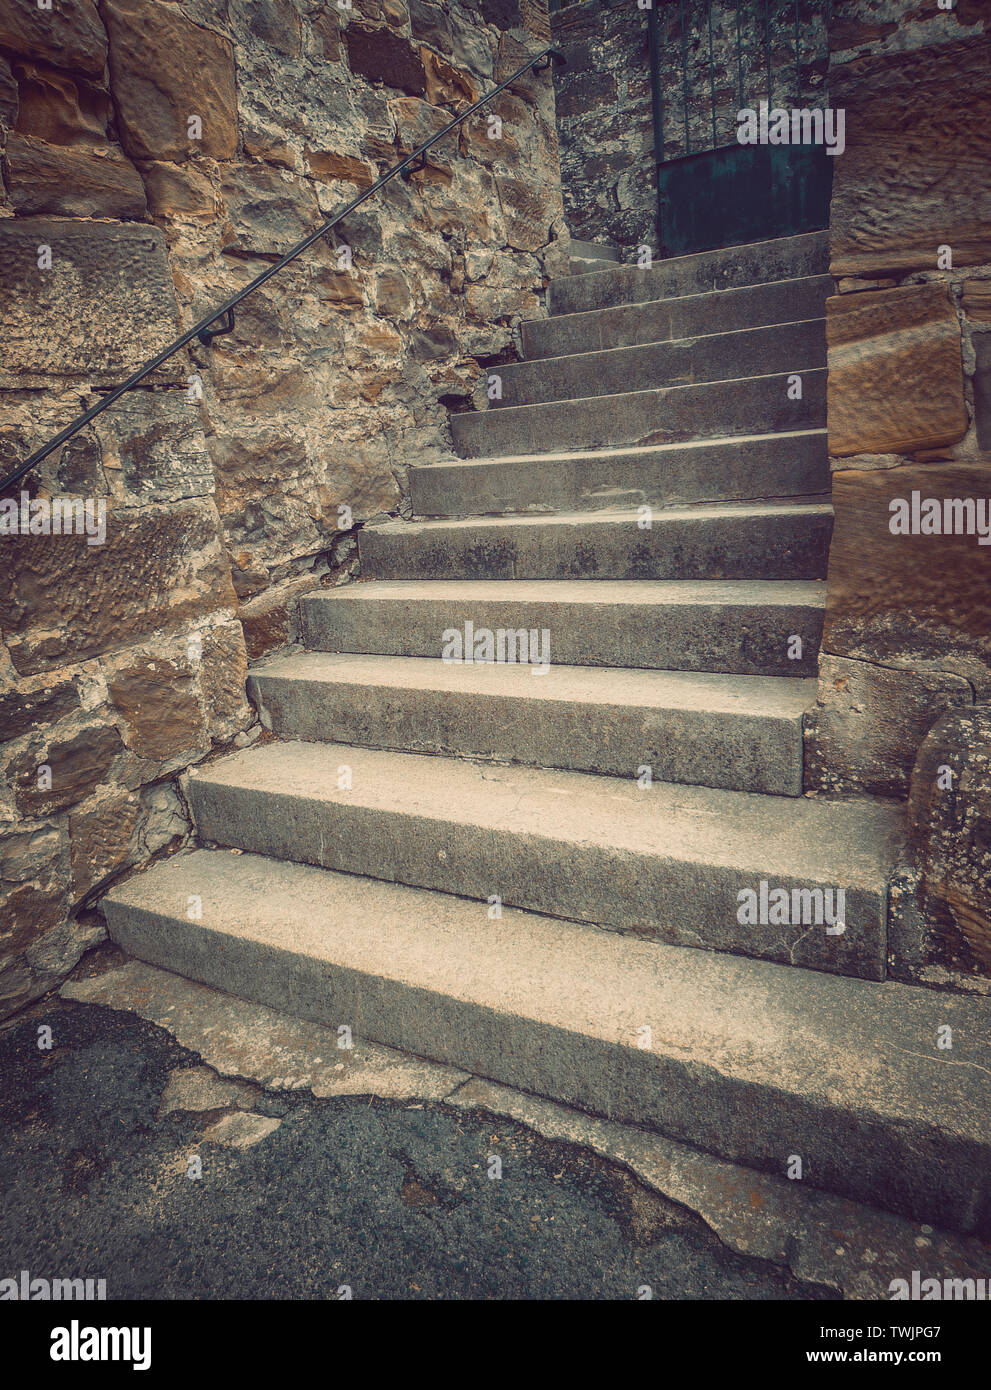 Old stone steps leading to nowhere. - Stock Image